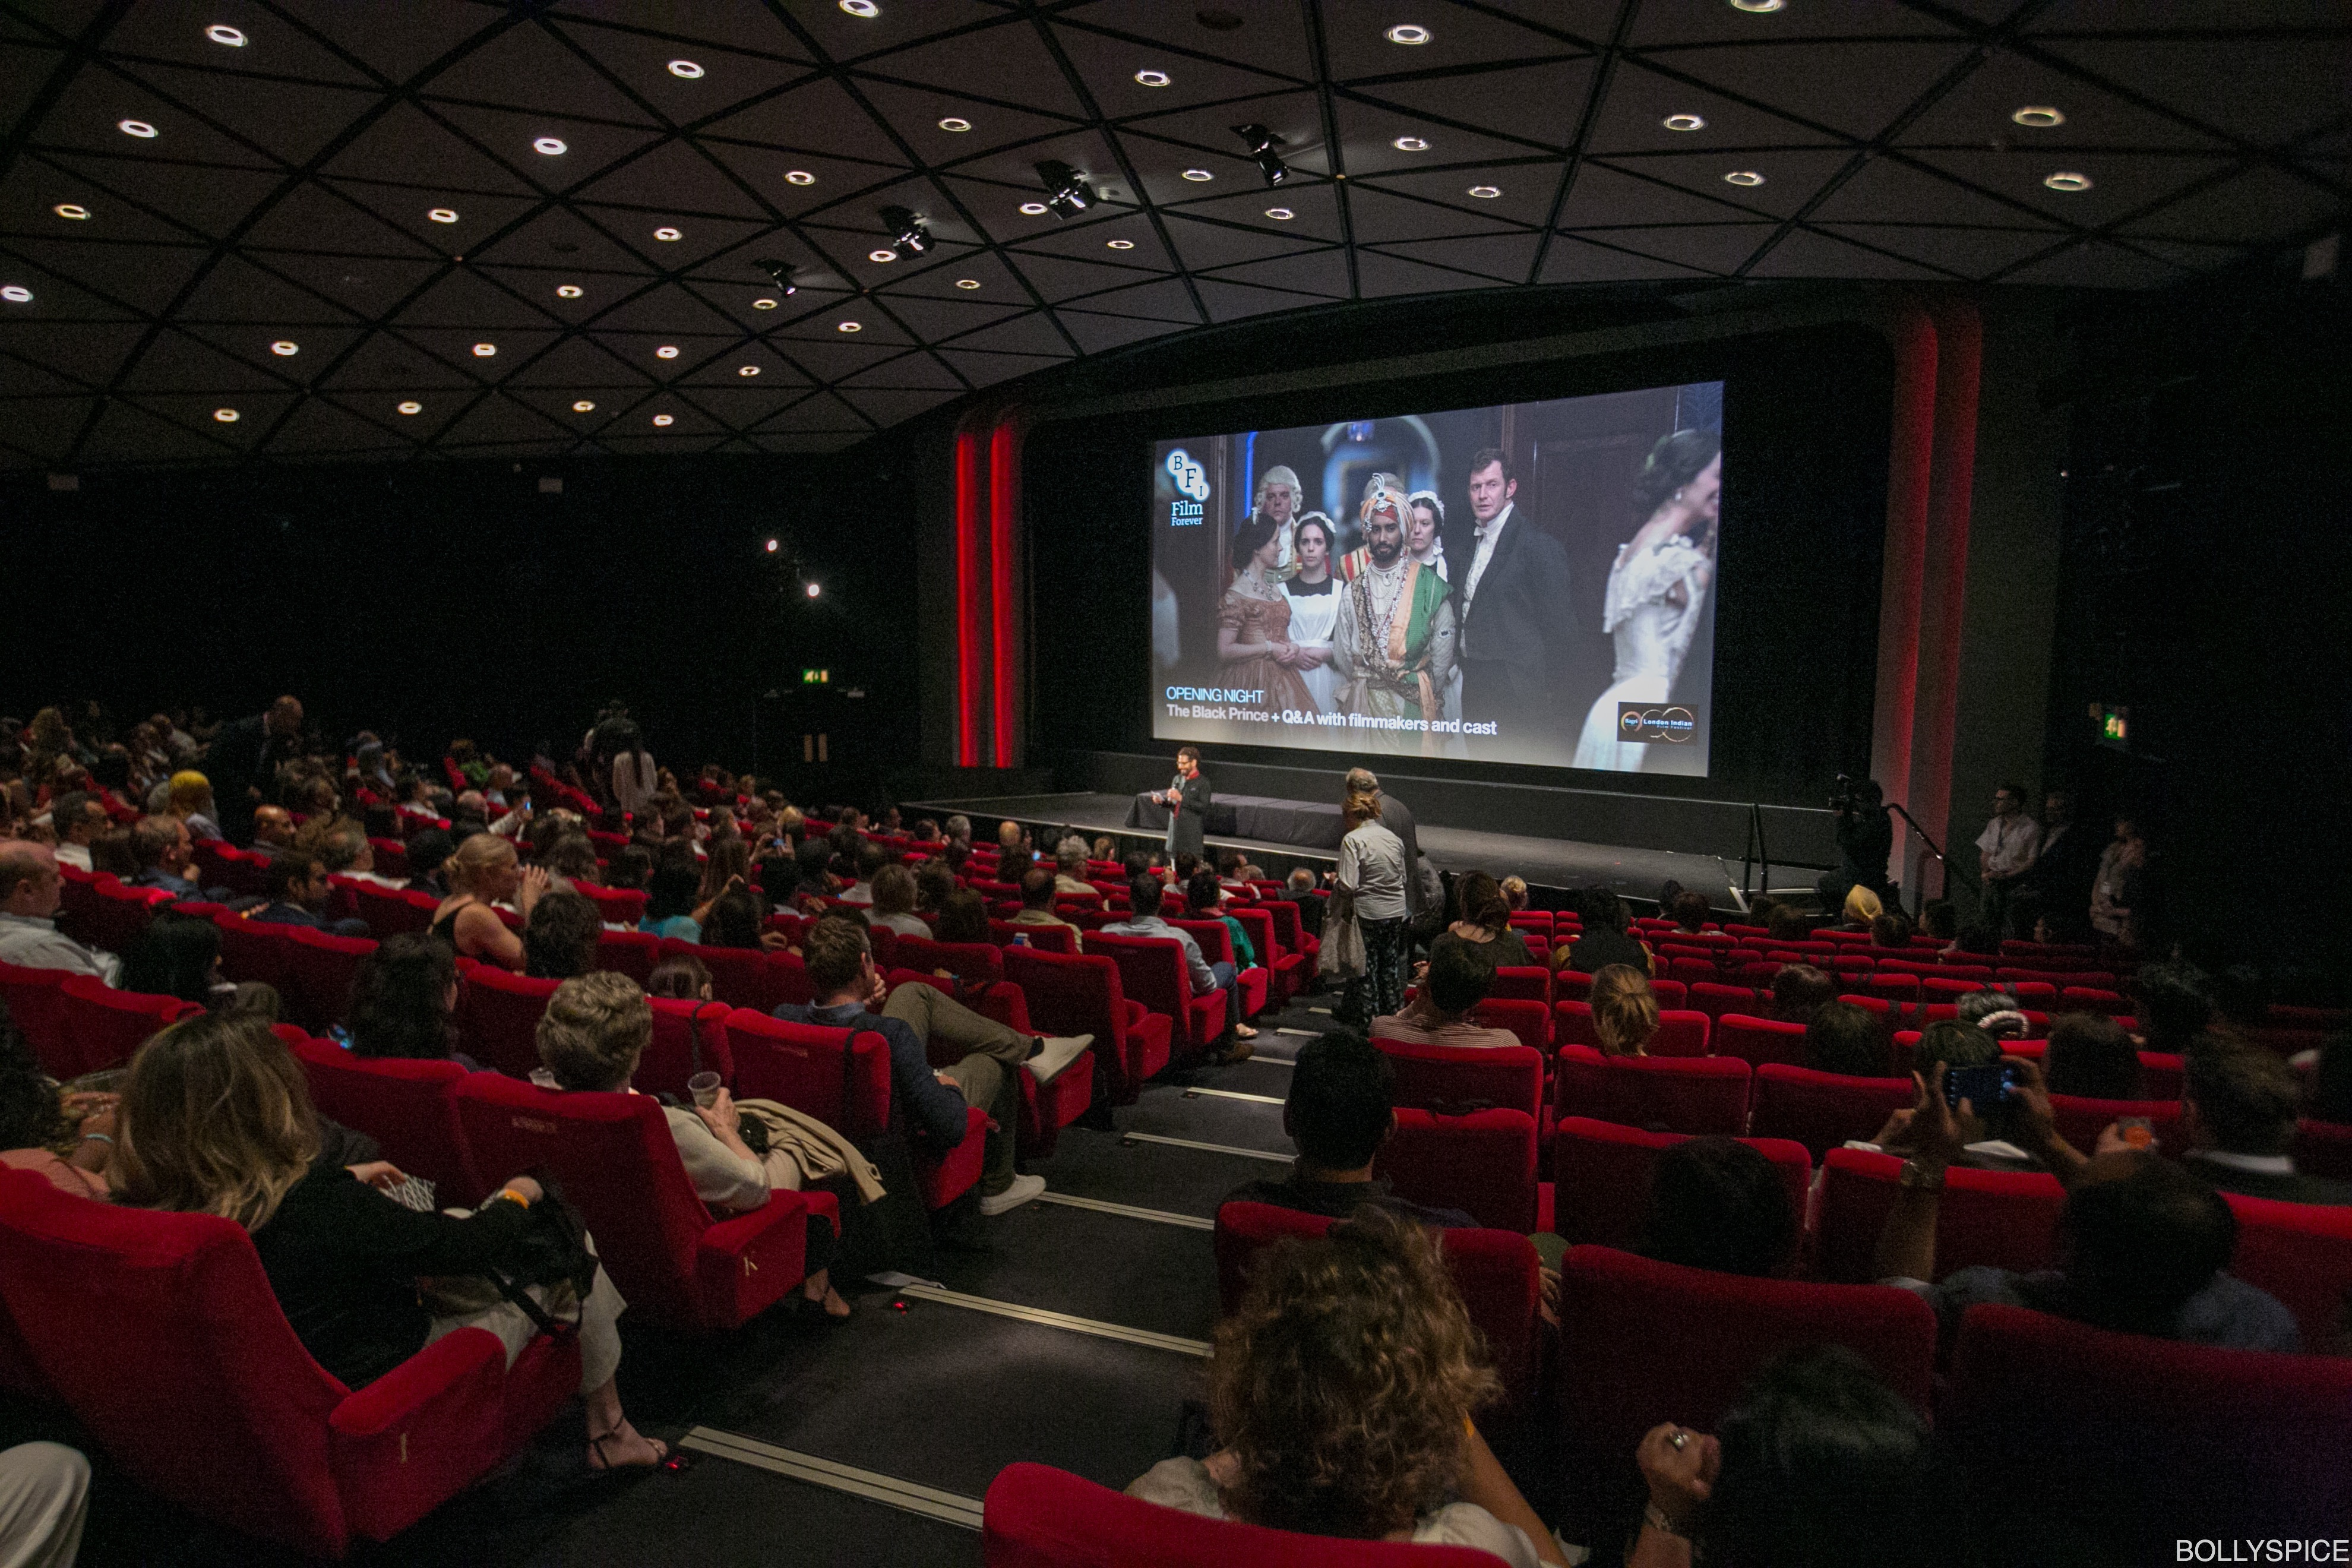 London indian film festival opening night the black prince the london indian film festival liff has come a long way in the years since its inception now in its 8th edition theres no sign of it slowing down in altavistaventures Images